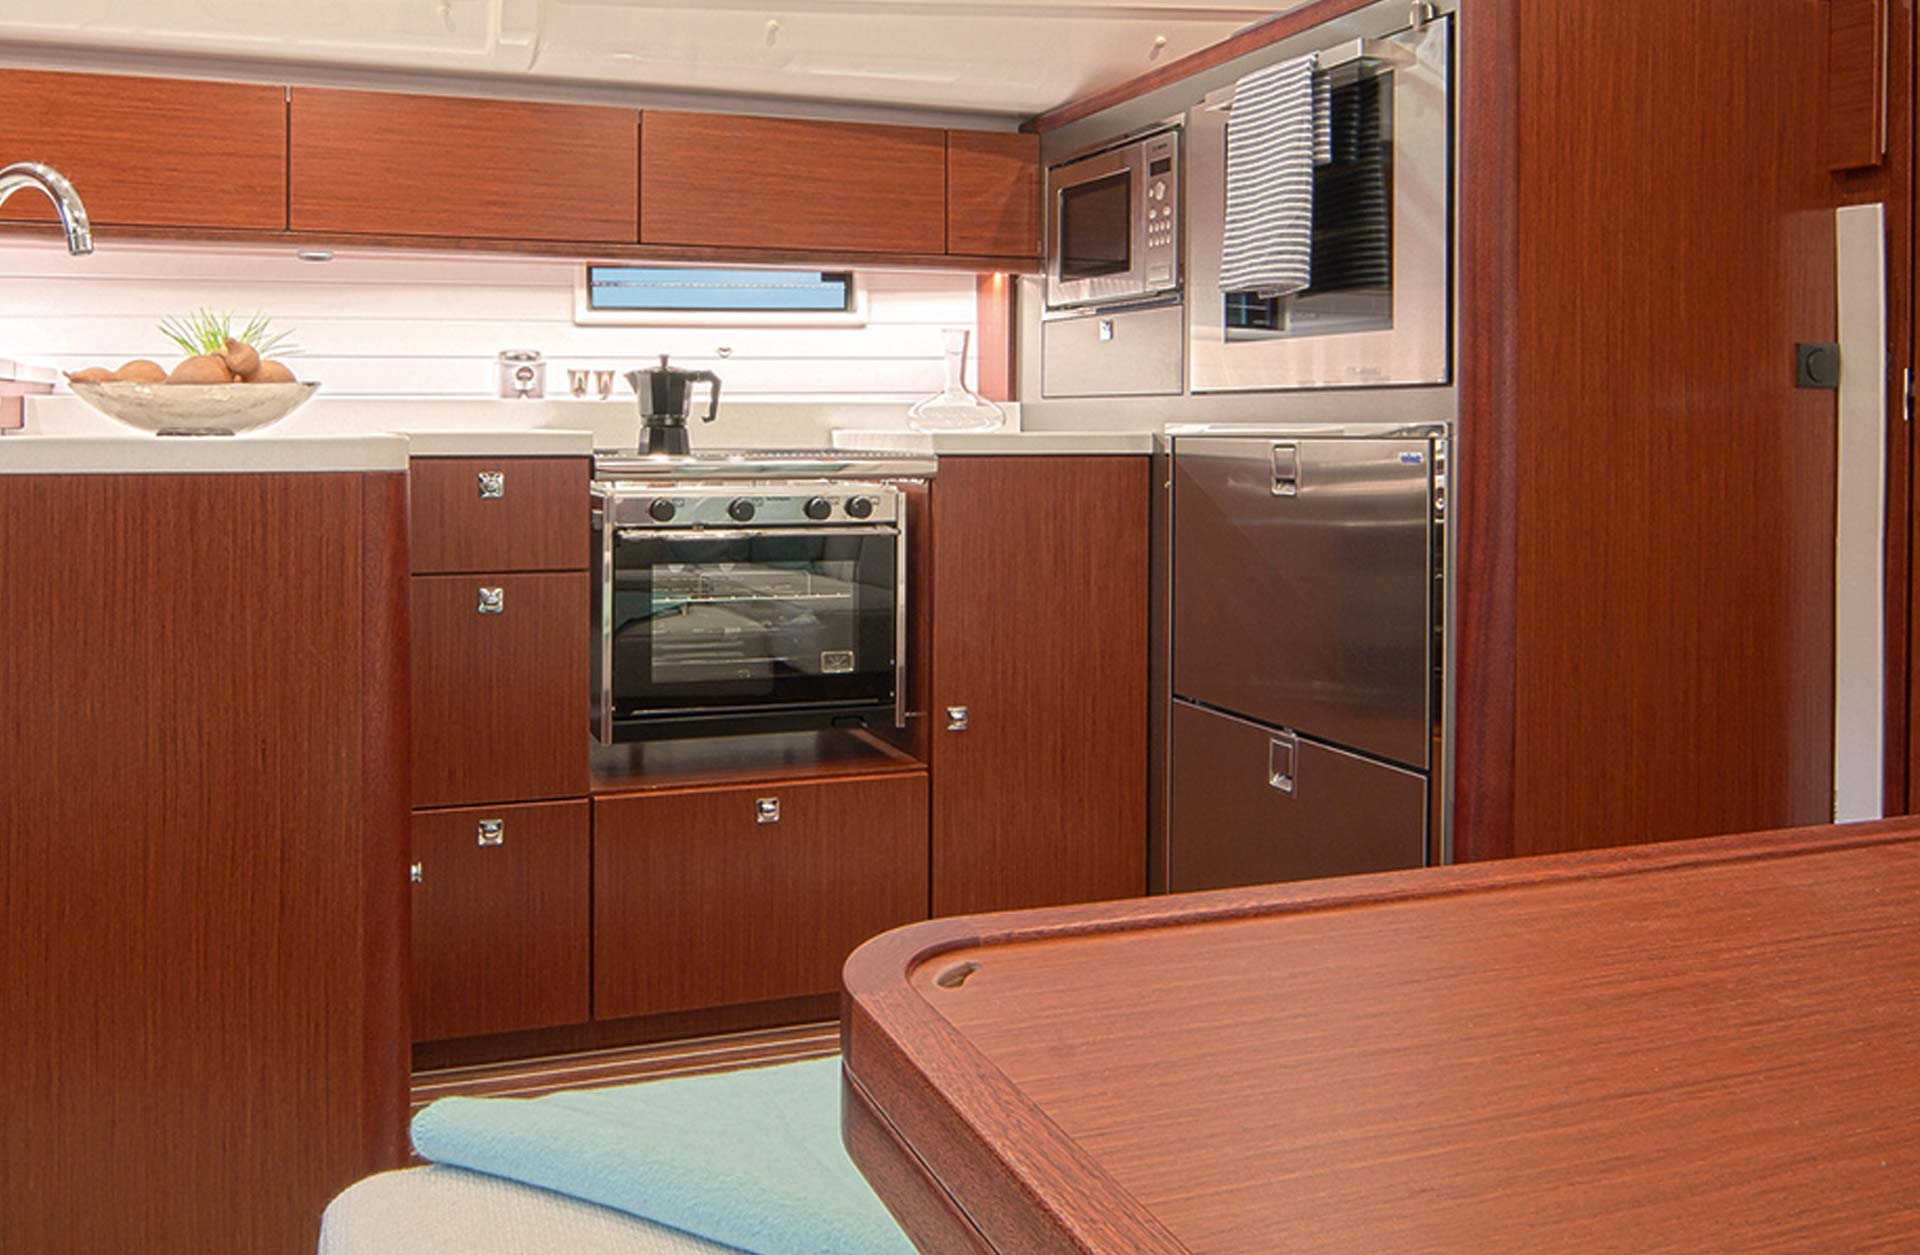 Bavaria Cruiser 51 for Sale in USA - Interior